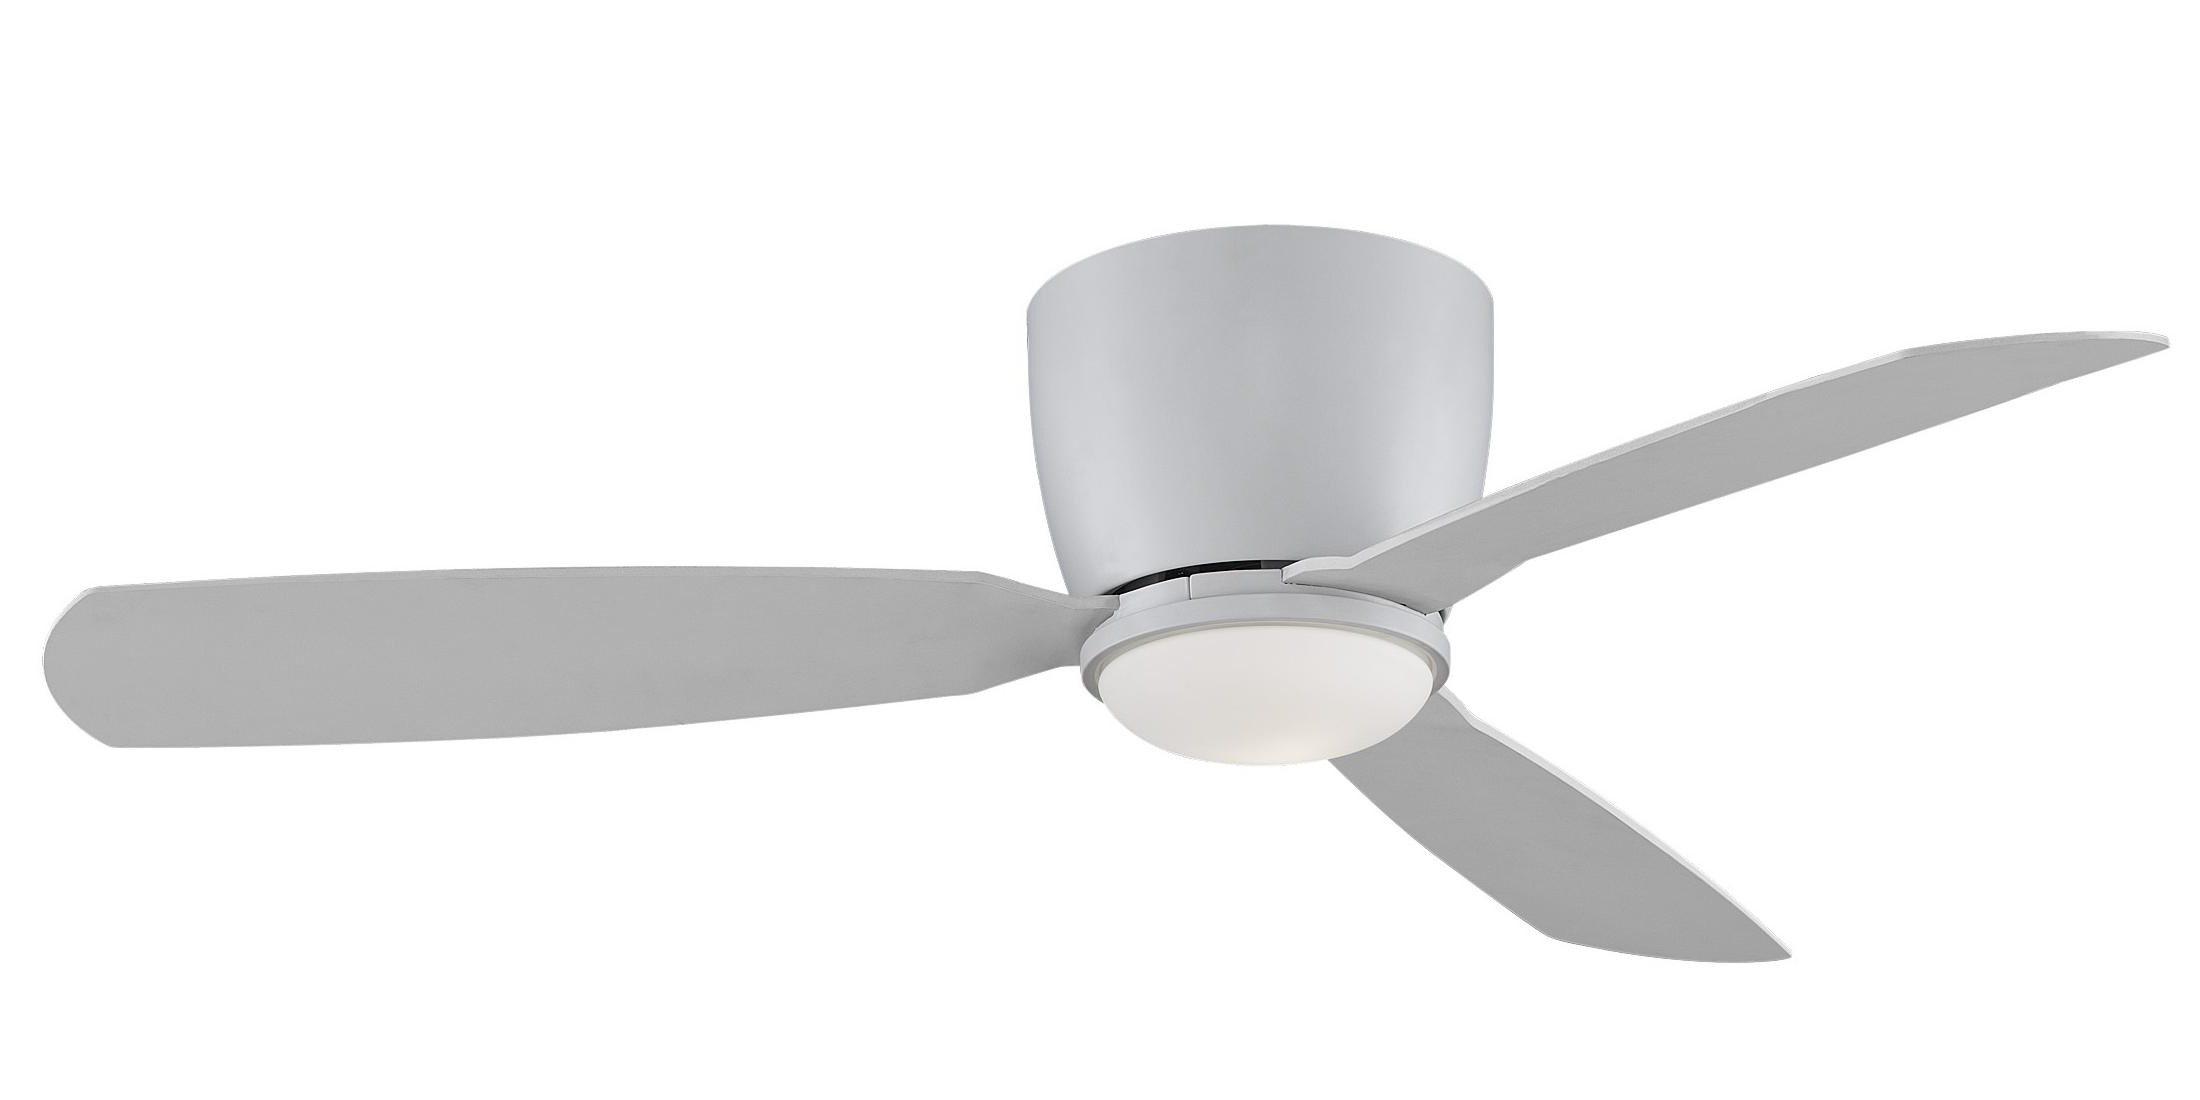 Famous Fanimation Embrace 52 Ceiling Fan Model Fps7955mw In Matte White Intended For Embrace 3 Blade Ceiling Fans (View 17 of 20)